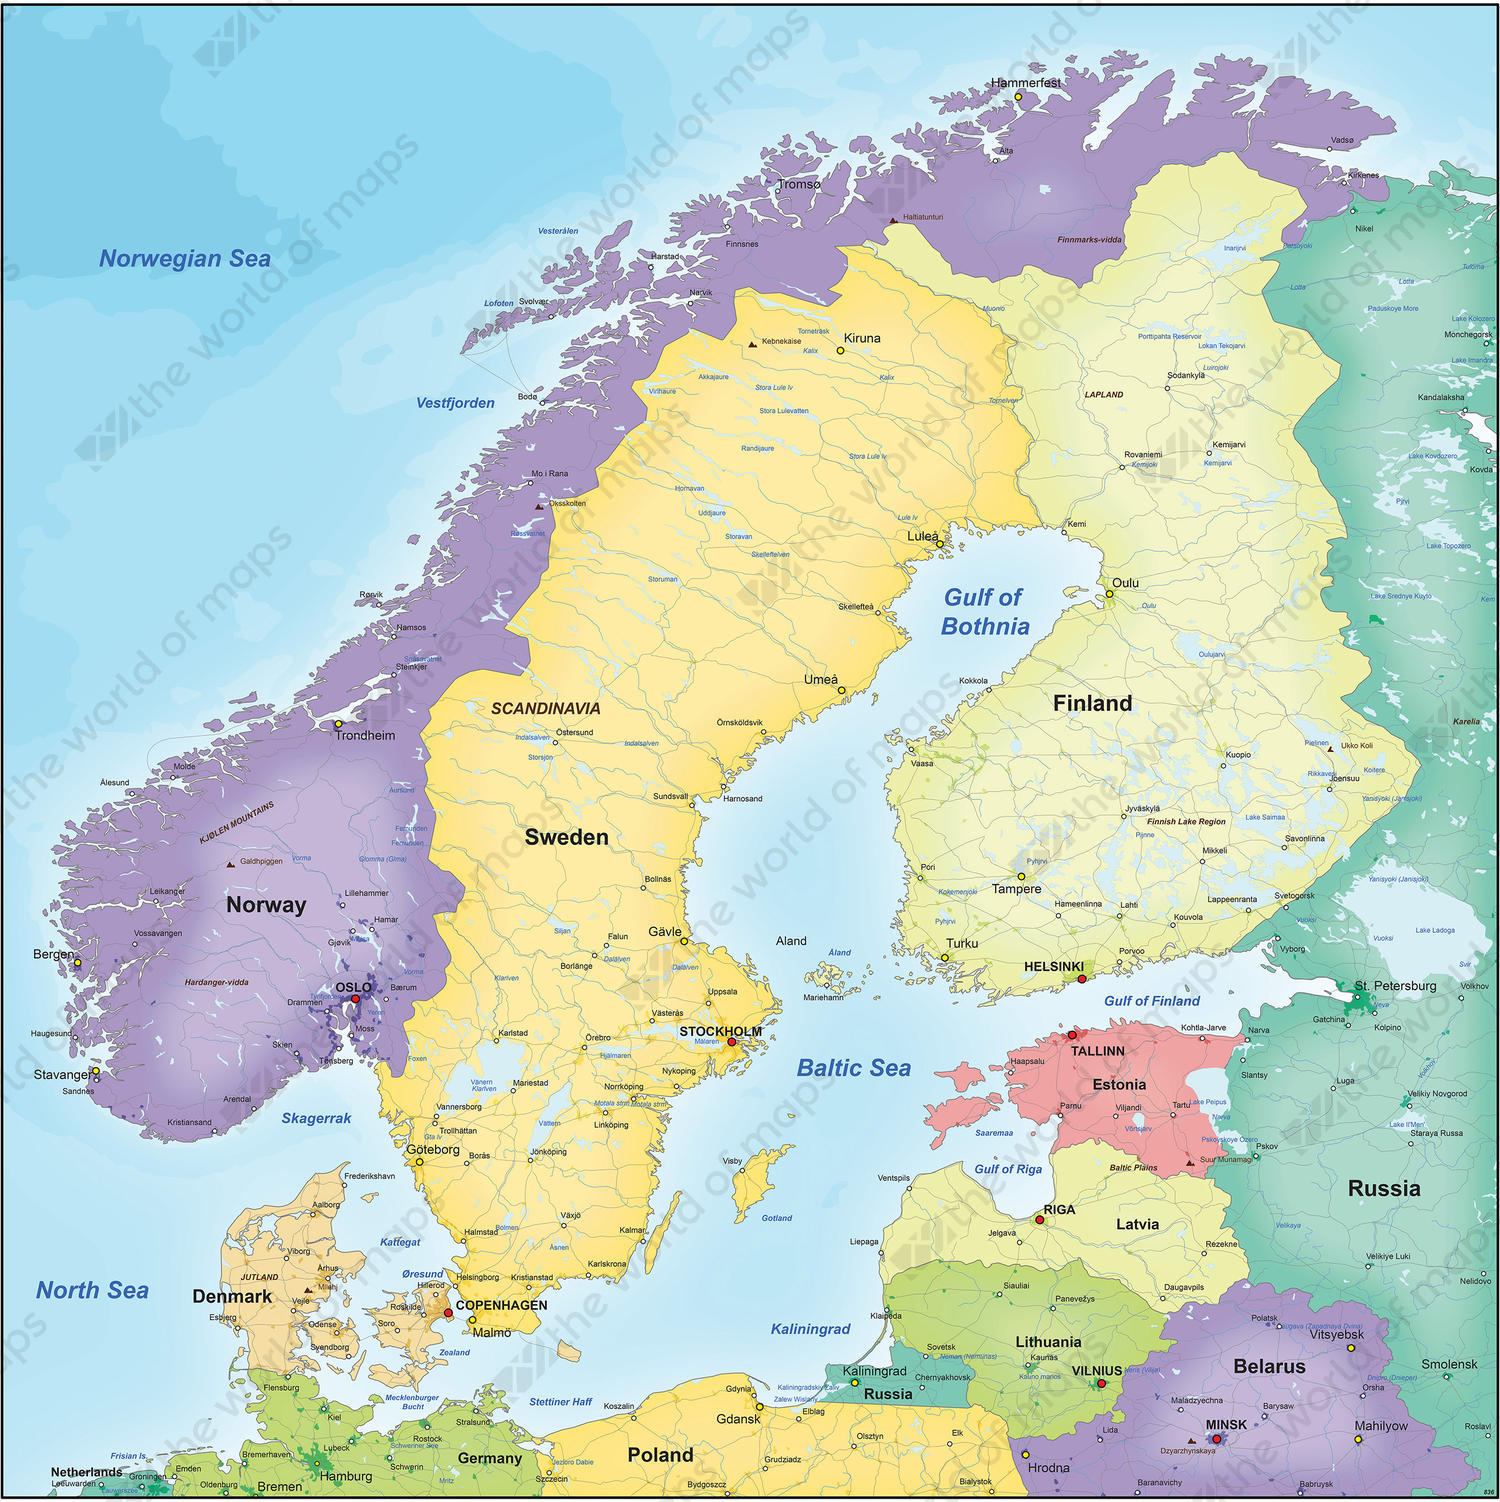 Digital Political Map Scandinavia The World Of Mapscom - Map of scandinavia